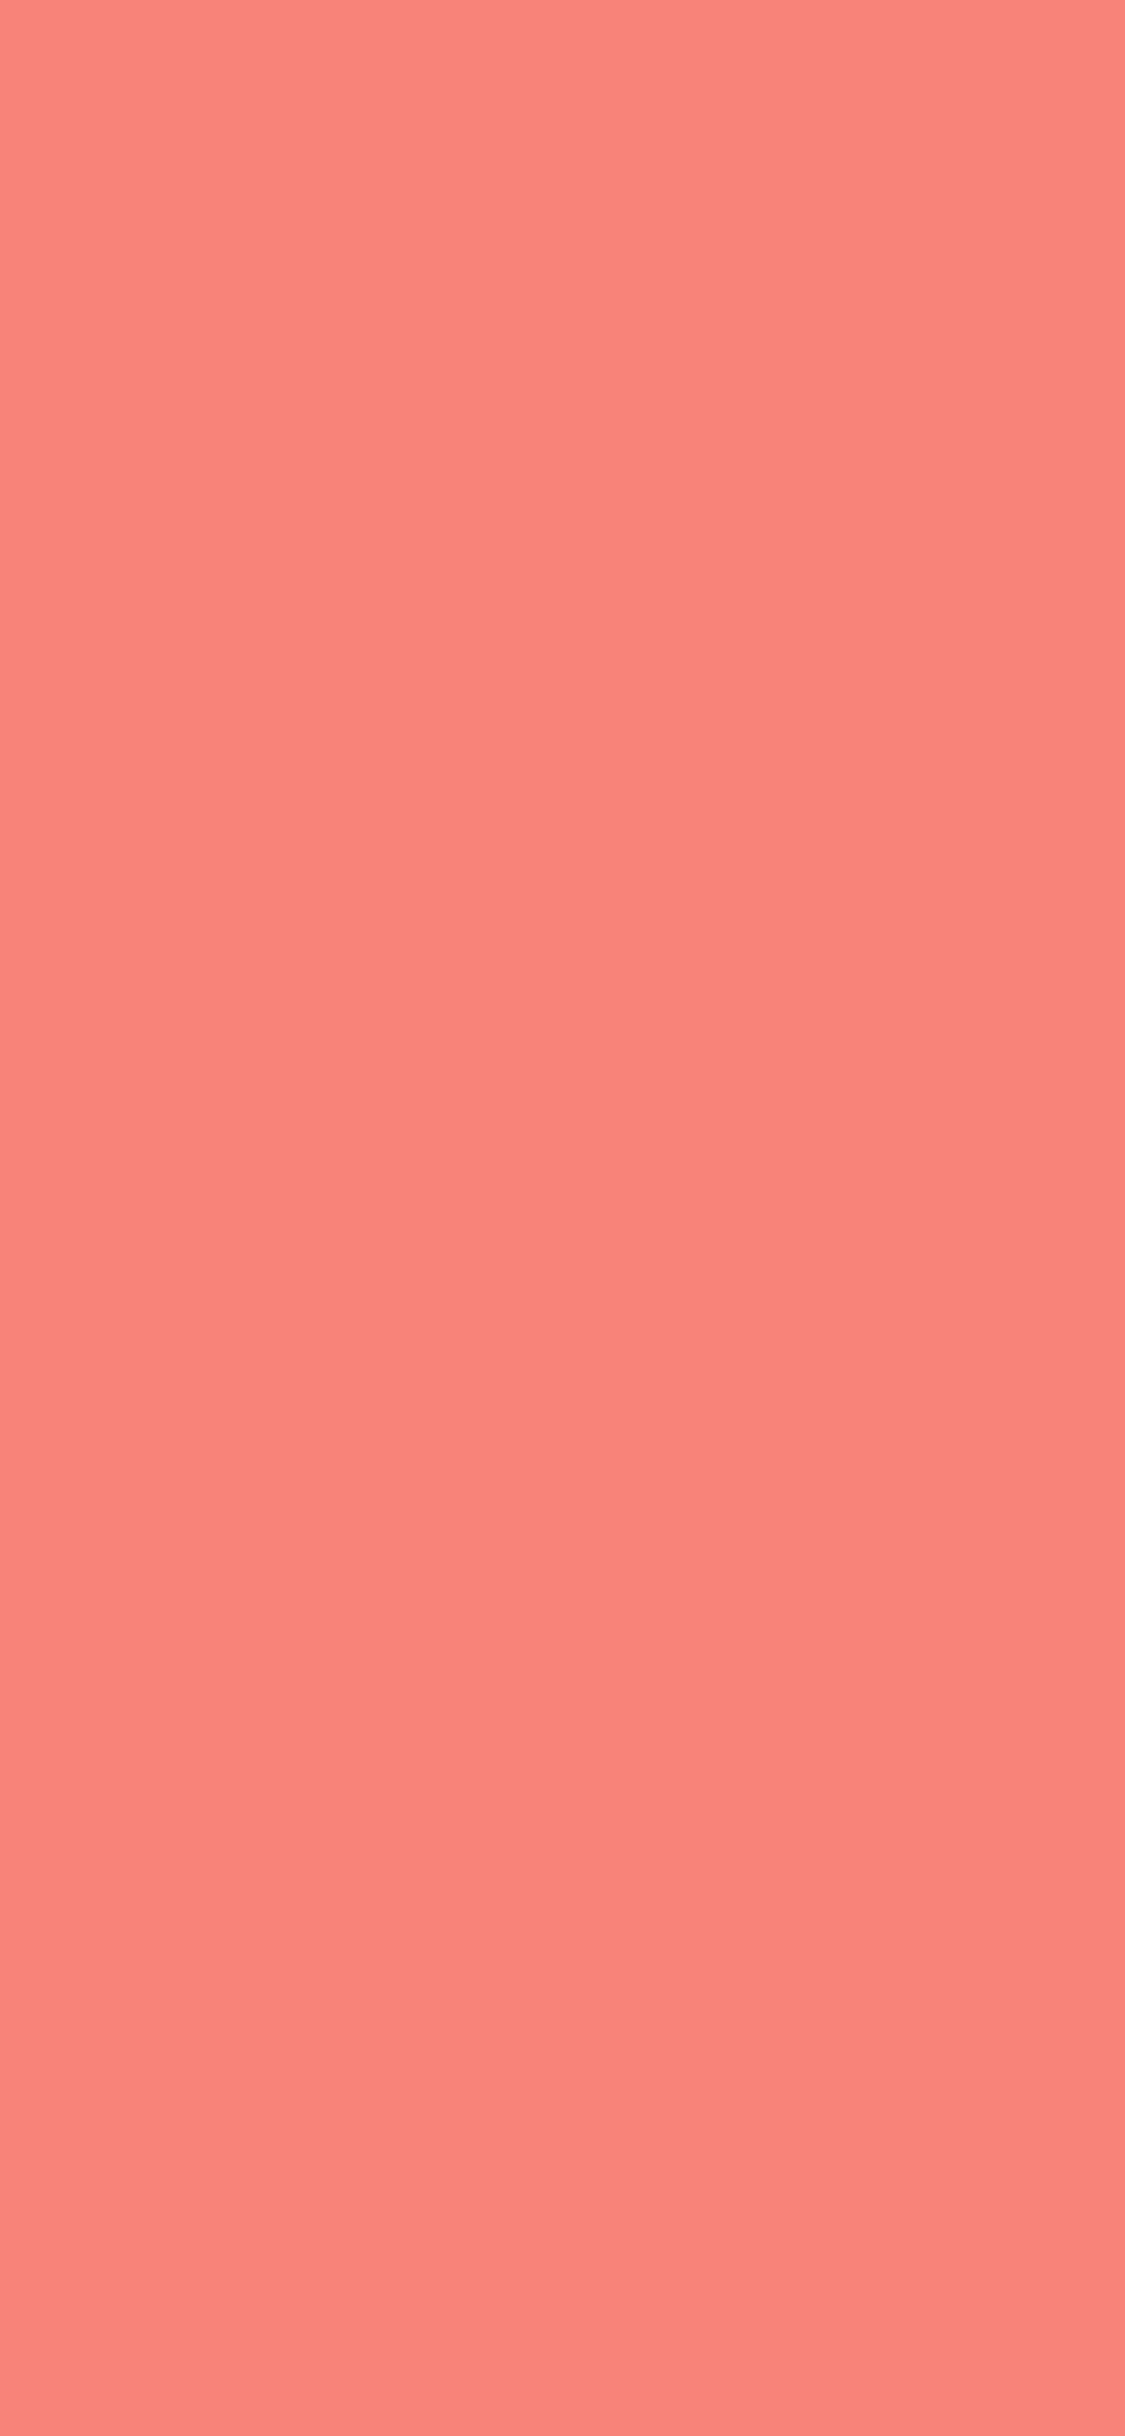 1125x2436 Congo Pink Solid Color Background